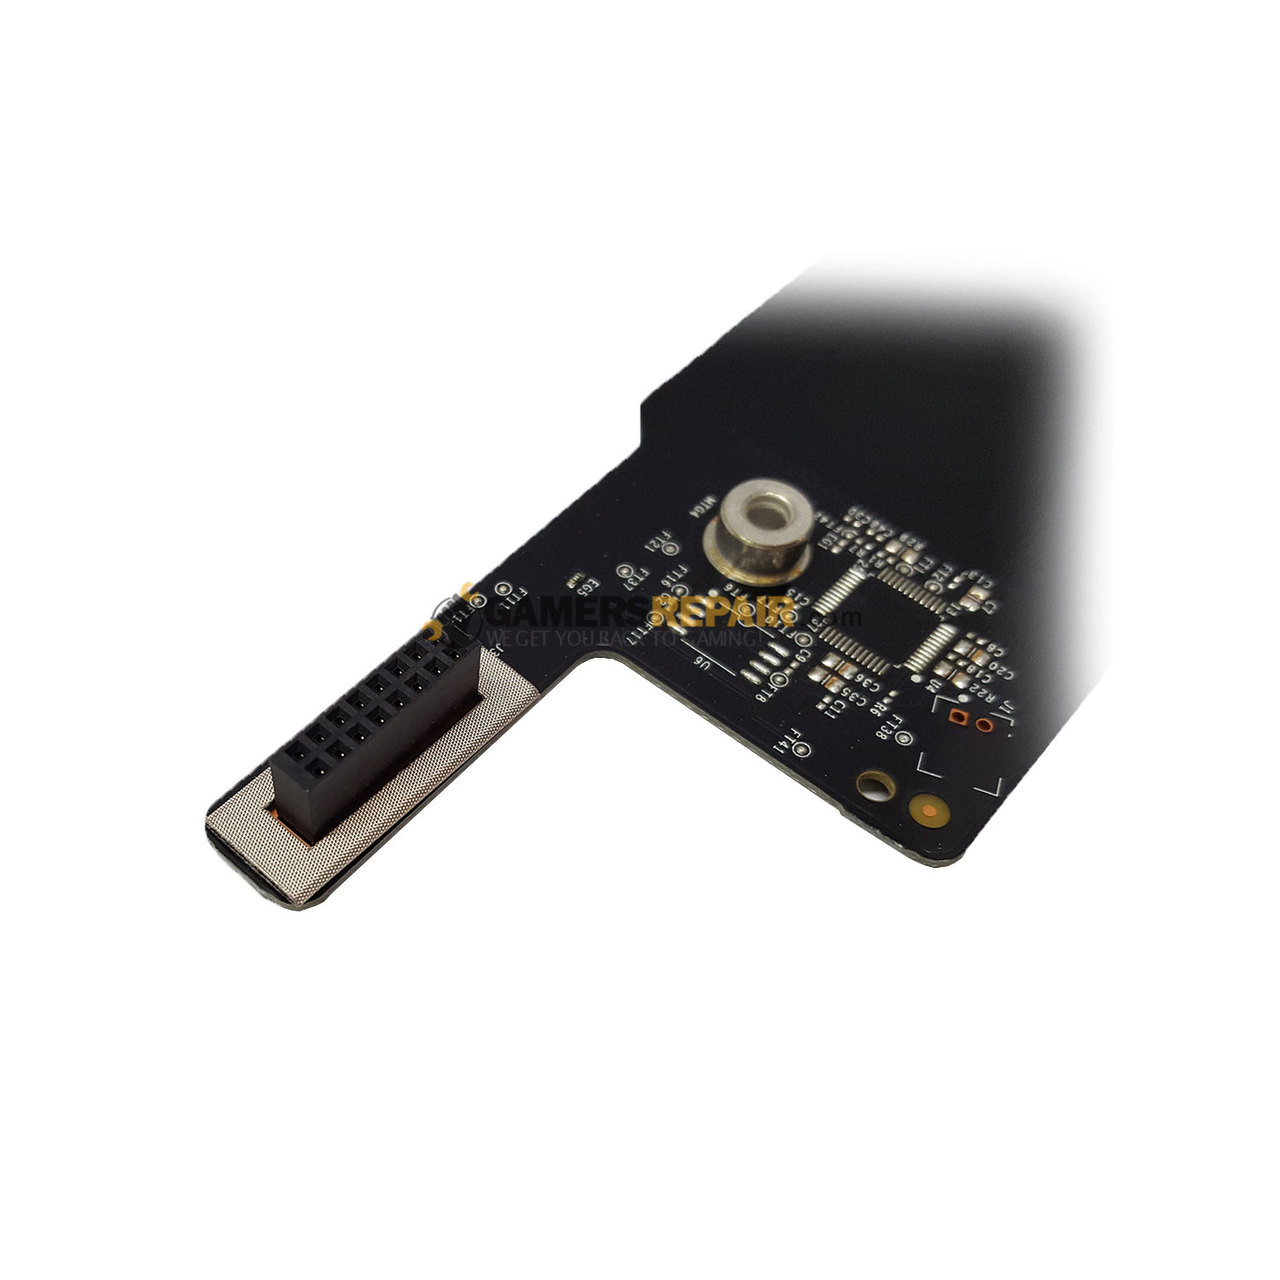 Xbox ONE S Power/Eject/Sync Board 1682